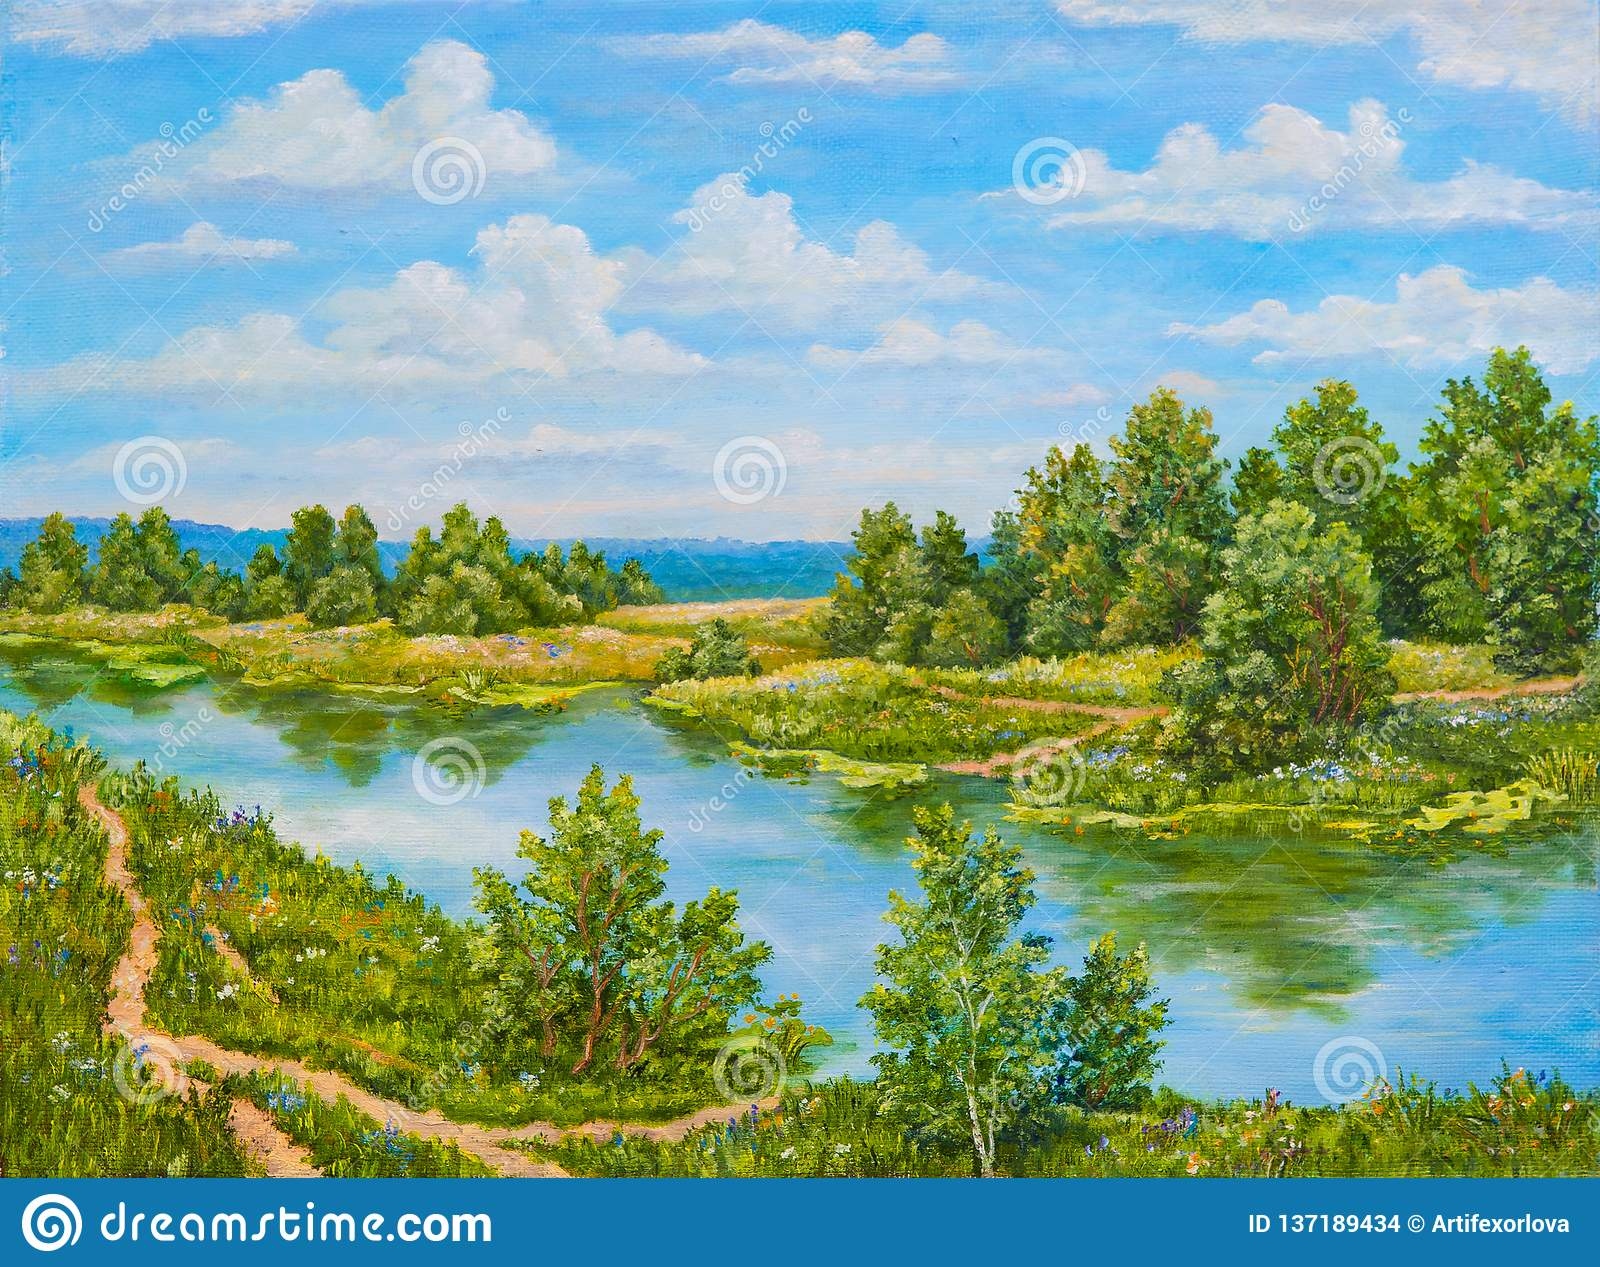 Green bushes near river in sunny day. Landscape trees, green grass on the shore of a river. Original oil painting on a